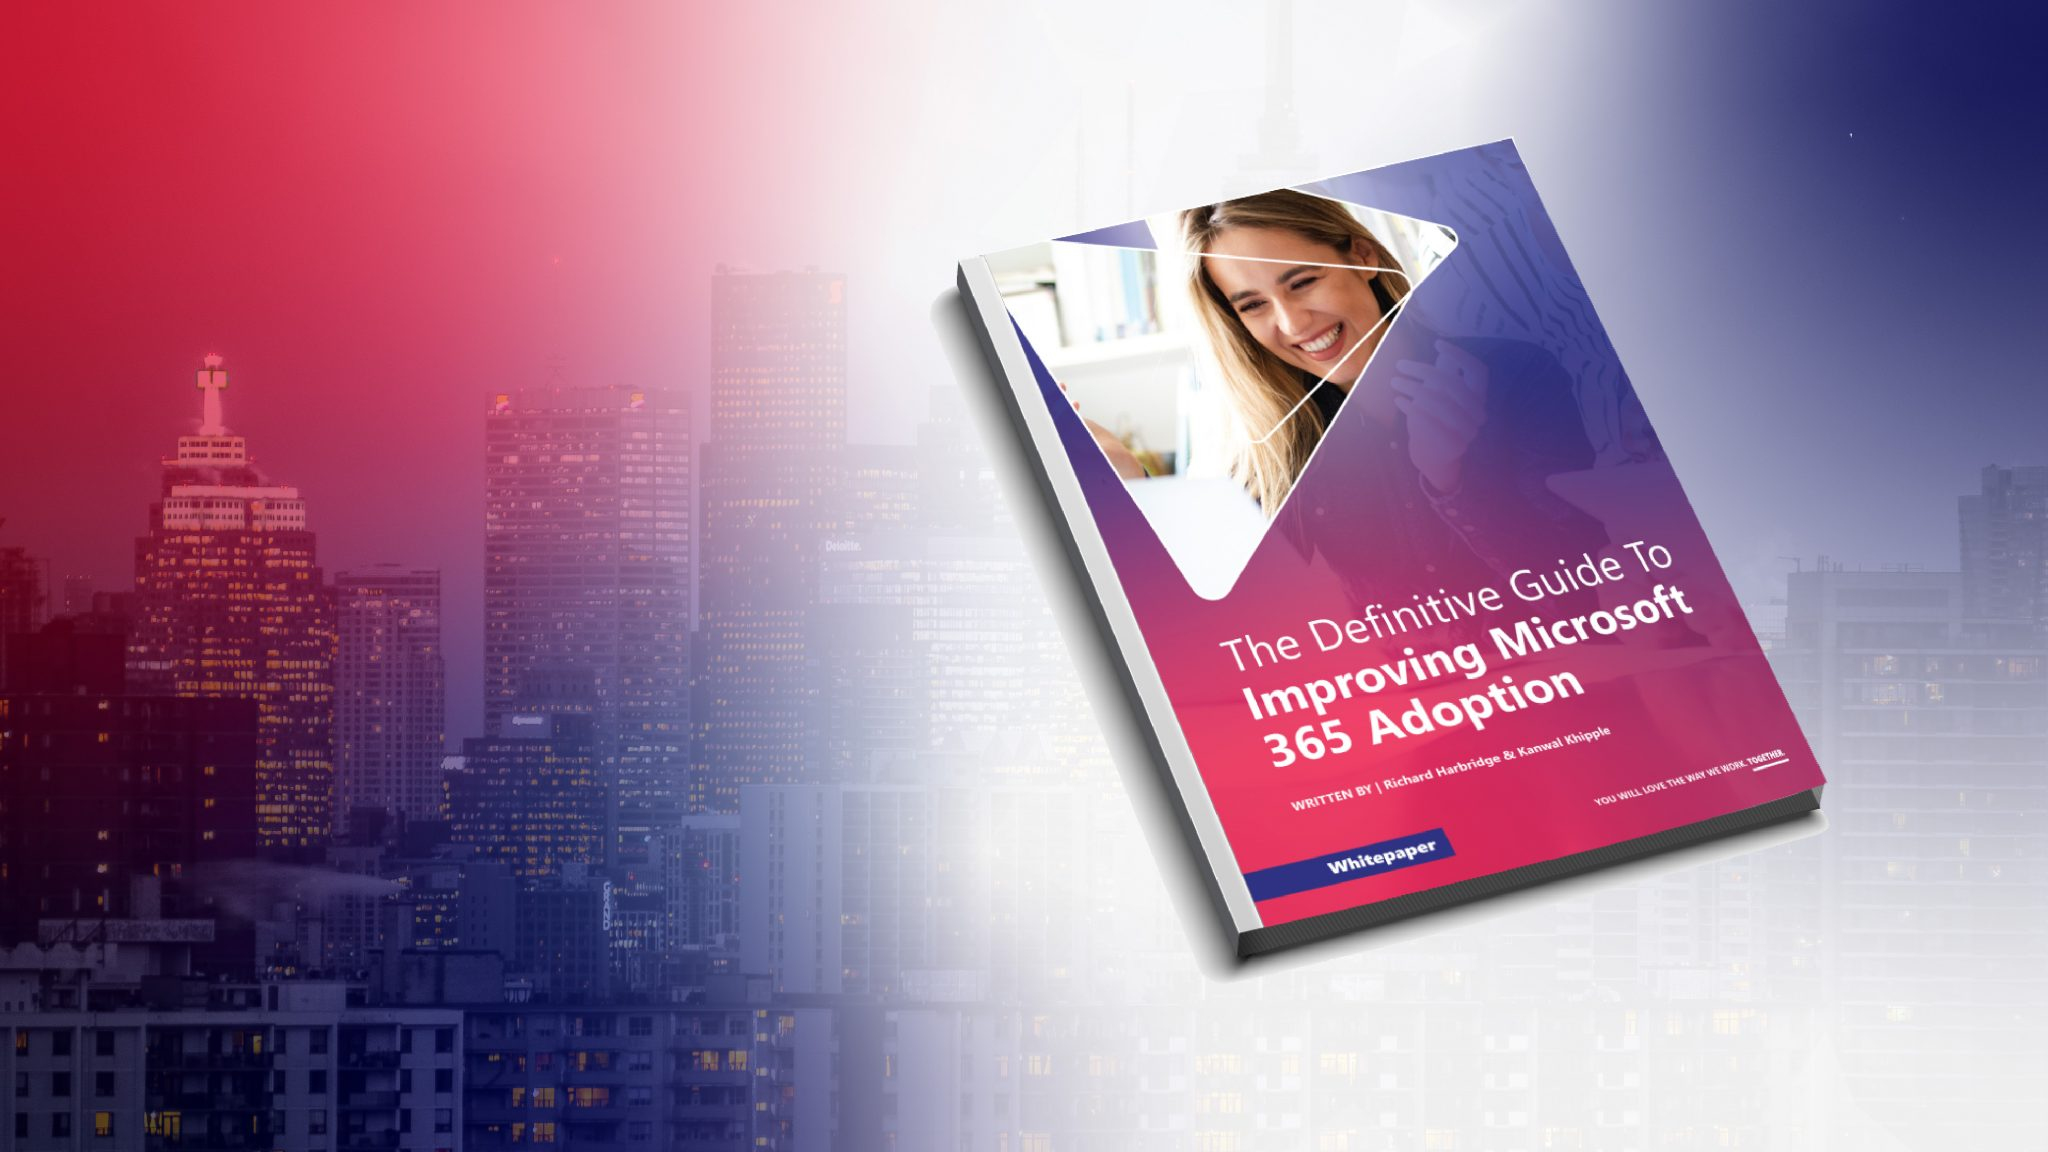 70+ Pages with <br> Everything You <br> Need to Know to <br> Ensure Microsoft 365 <br> Adoption